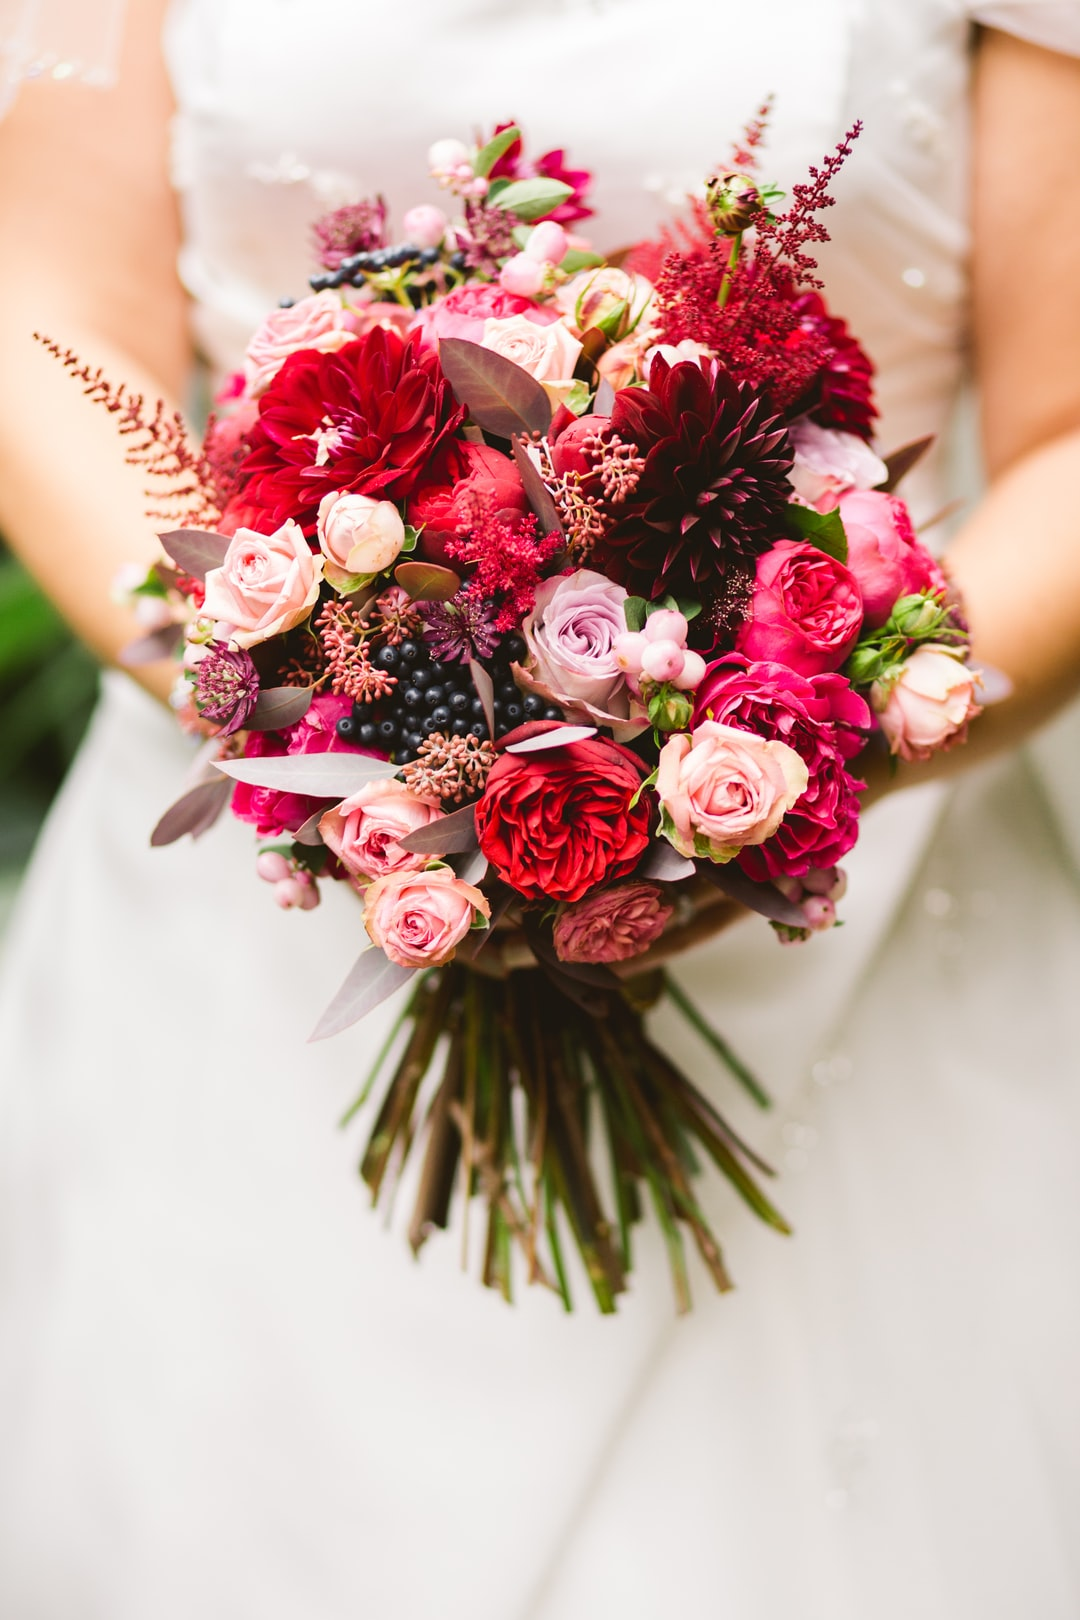 Wedding bouquet pictures download free images on unsplash - Bouquet of red roses hd images ...